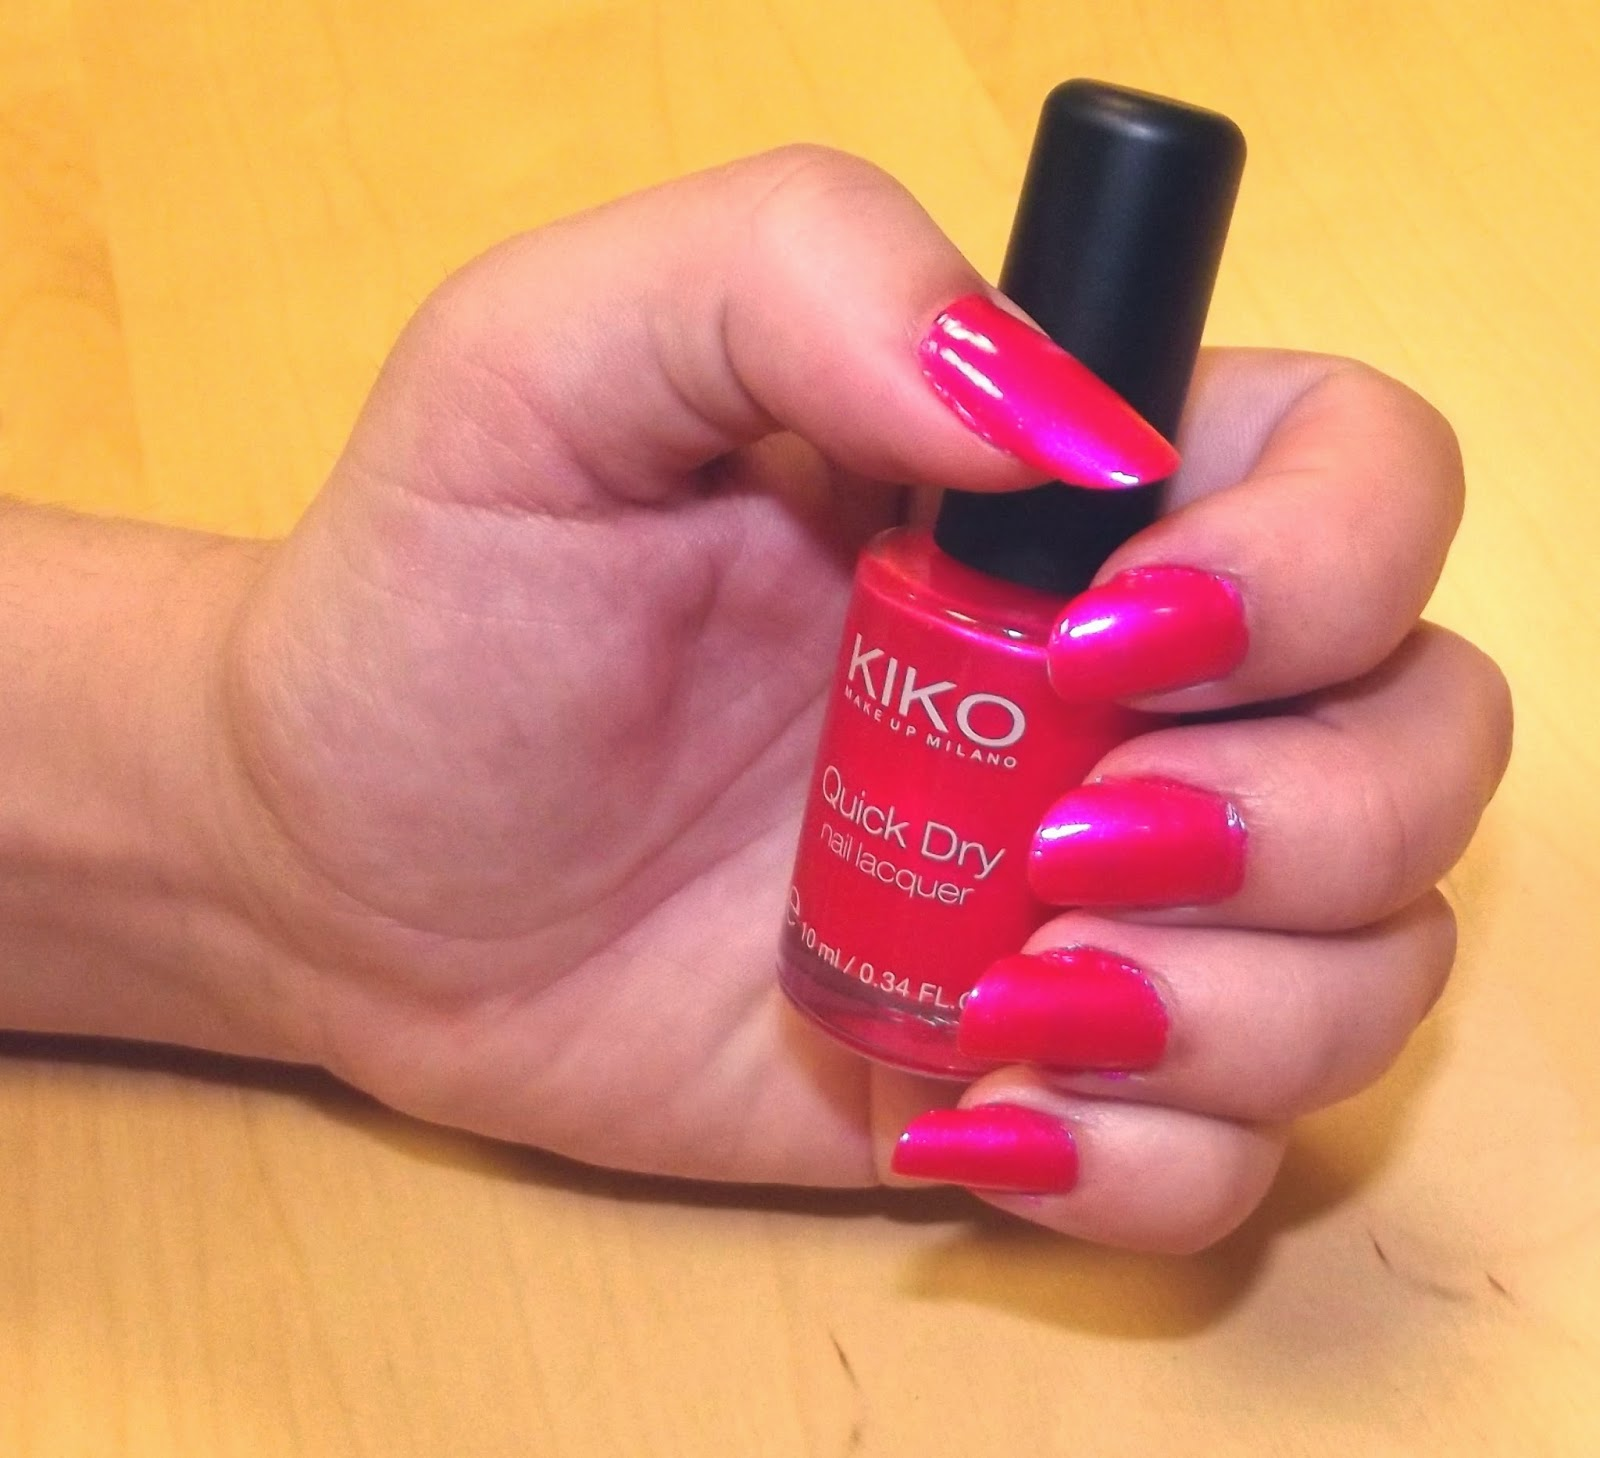 Kiko Quick Dry rose